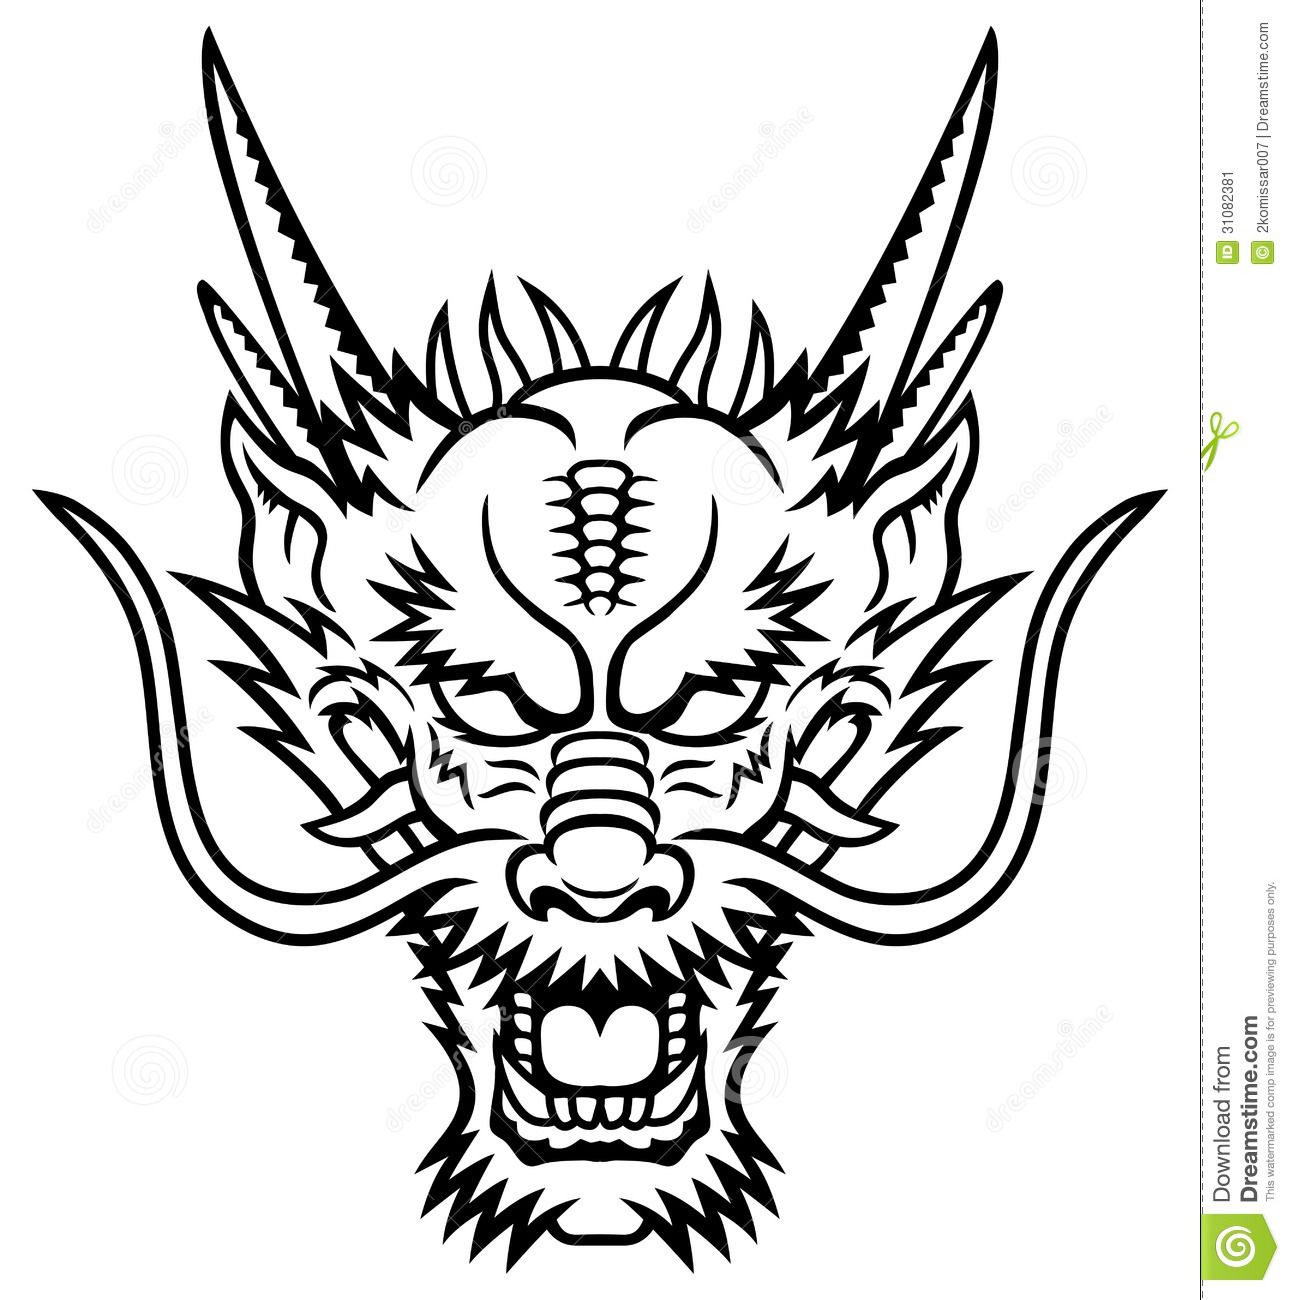 1290x1300 Dragon Head Stock Image